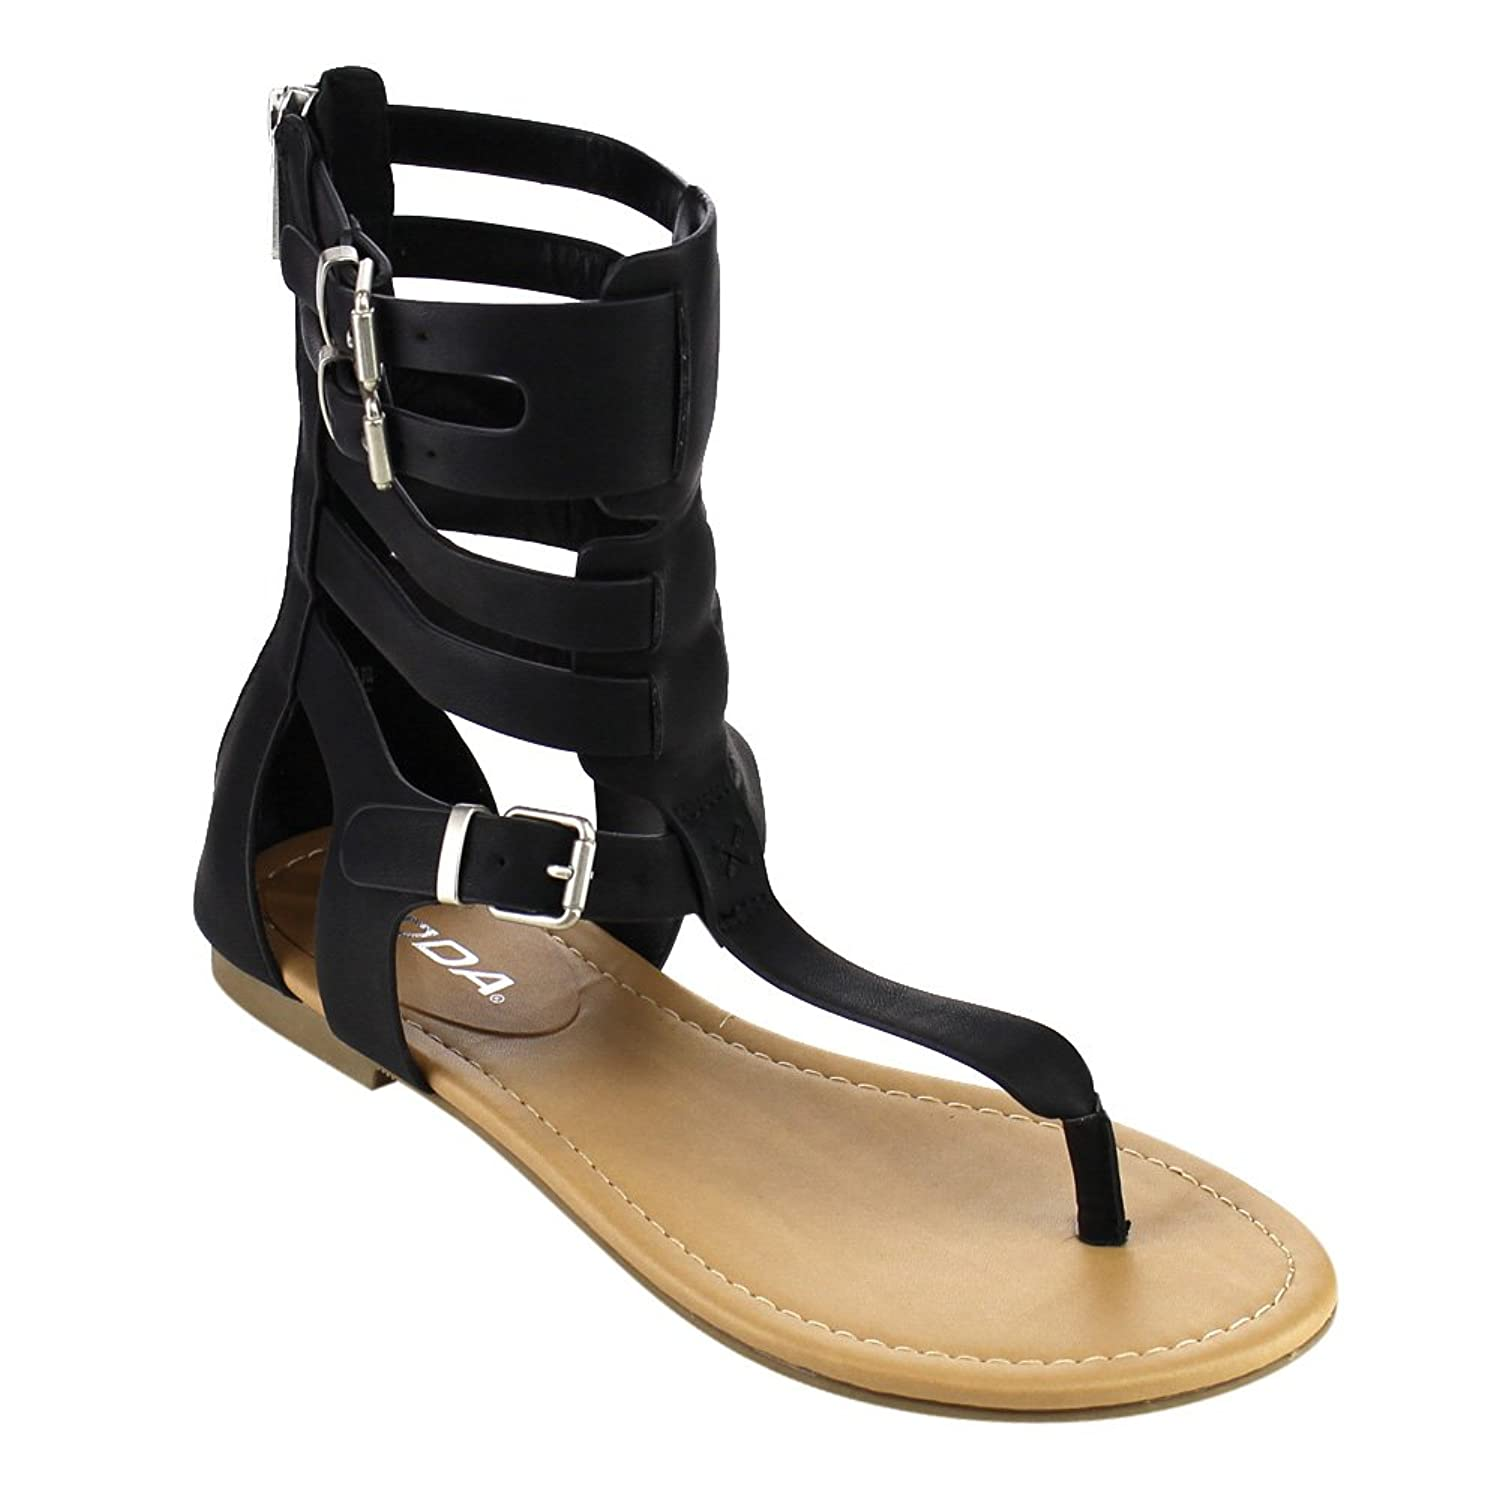 83b692a8f Women s Shoes T-strap Caged Buckled Flat Thong Sandals Open Toe Back Zipper  One Size